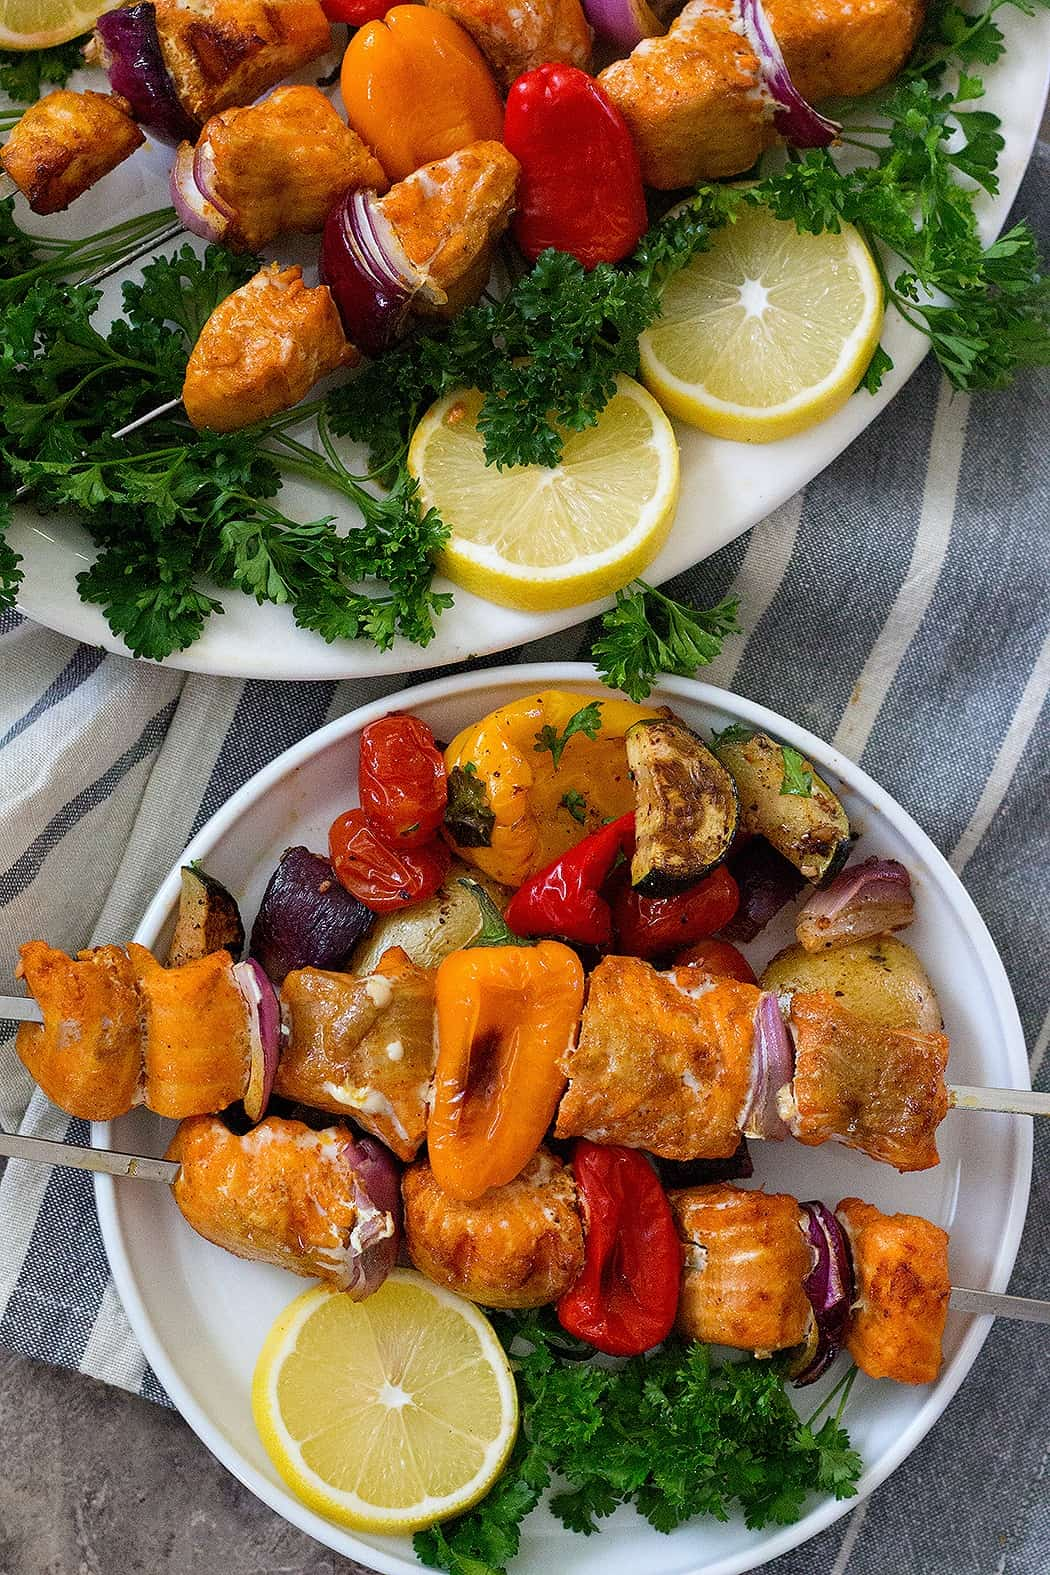 salmon shish kabobs are perfect for summer entertaining.